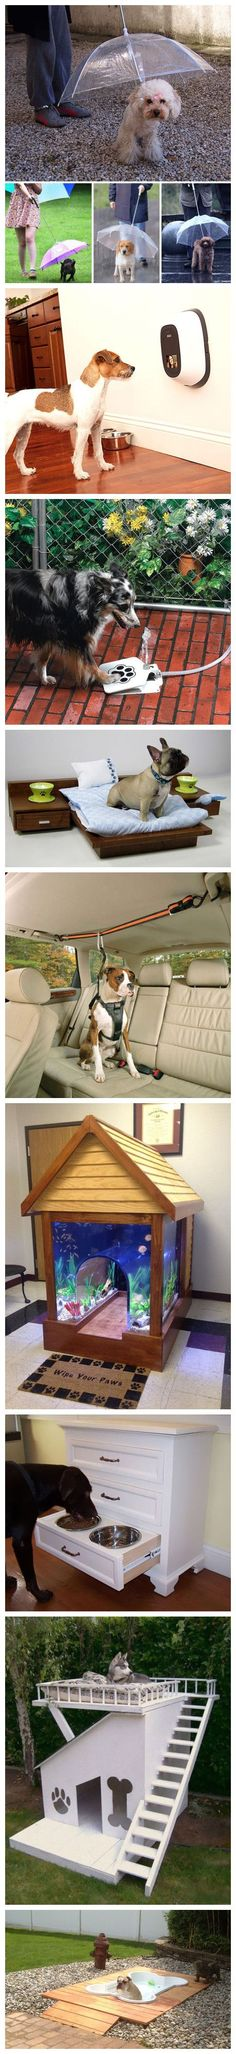 Creative products for doggies! Cooool! For more inspirations, visit us at http://www.facebook.com/zosomart